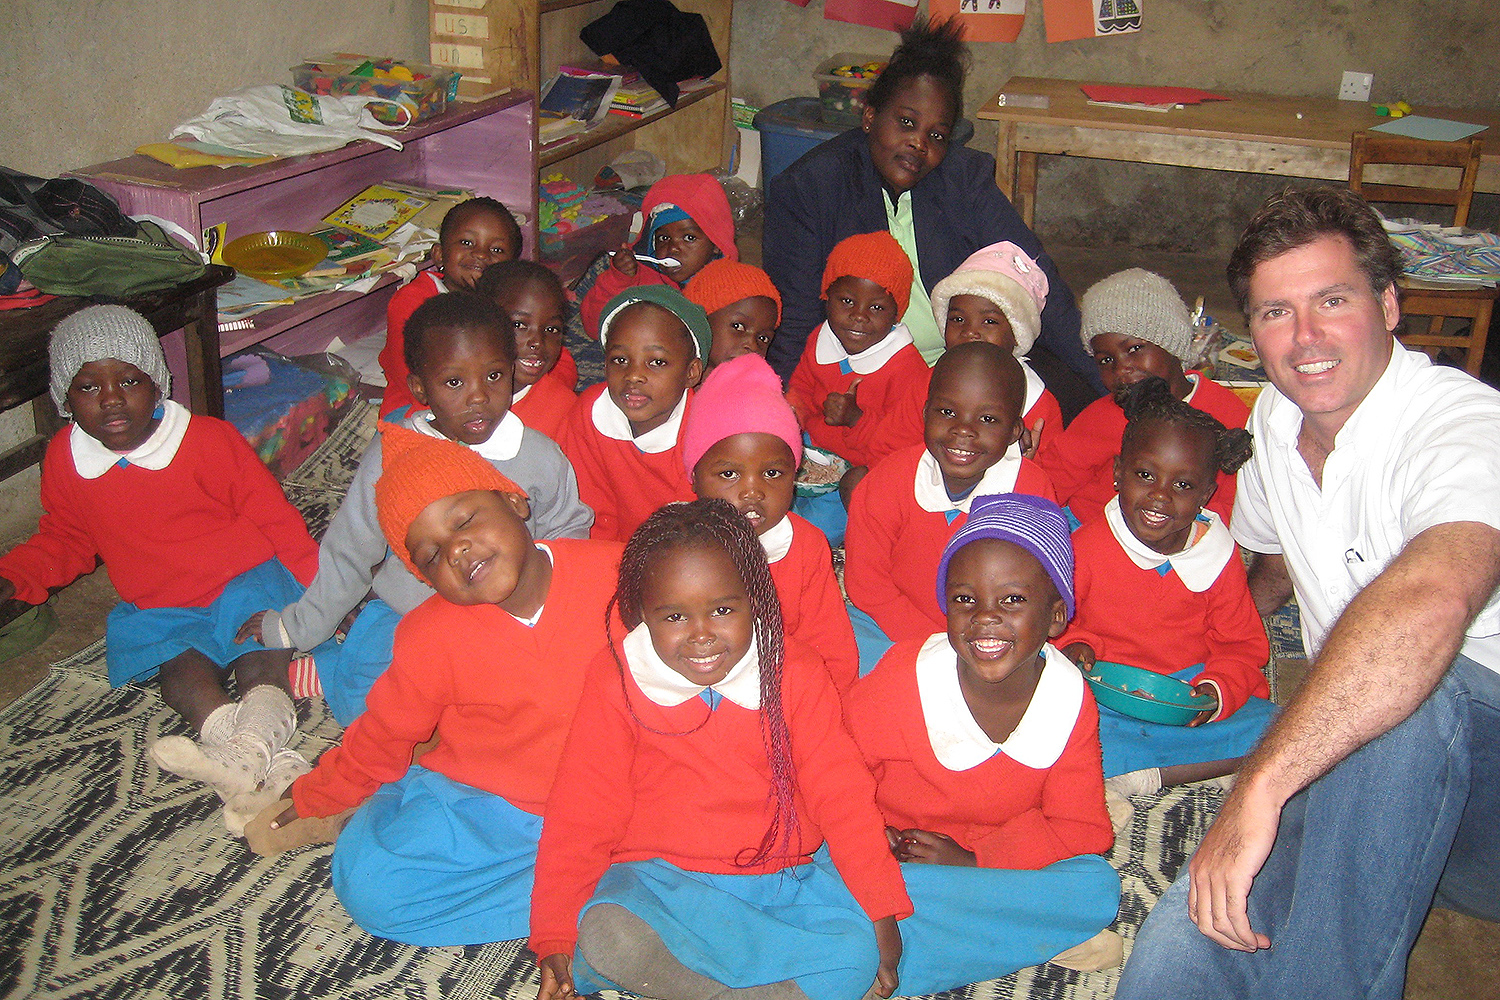 Professor Michael McAlear gathers with students at Shining Hope for Community, the nonprofit begun by Jessica '09 and Kennedy '12 Odede in Kibera, Africa.